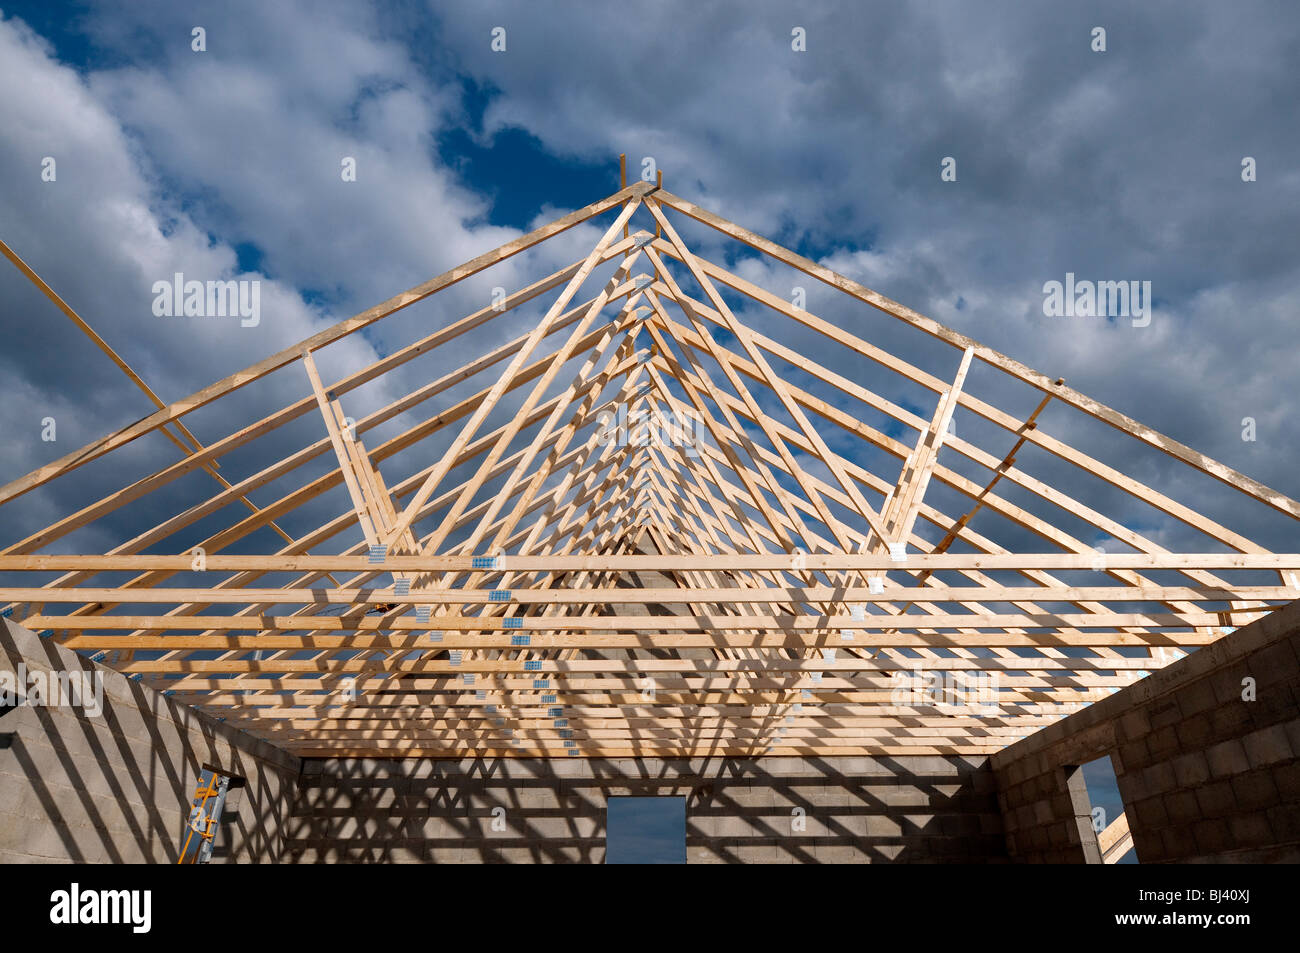 Prefabricated Timber Roof Trusses On Building Site France Stock Photo Alamy